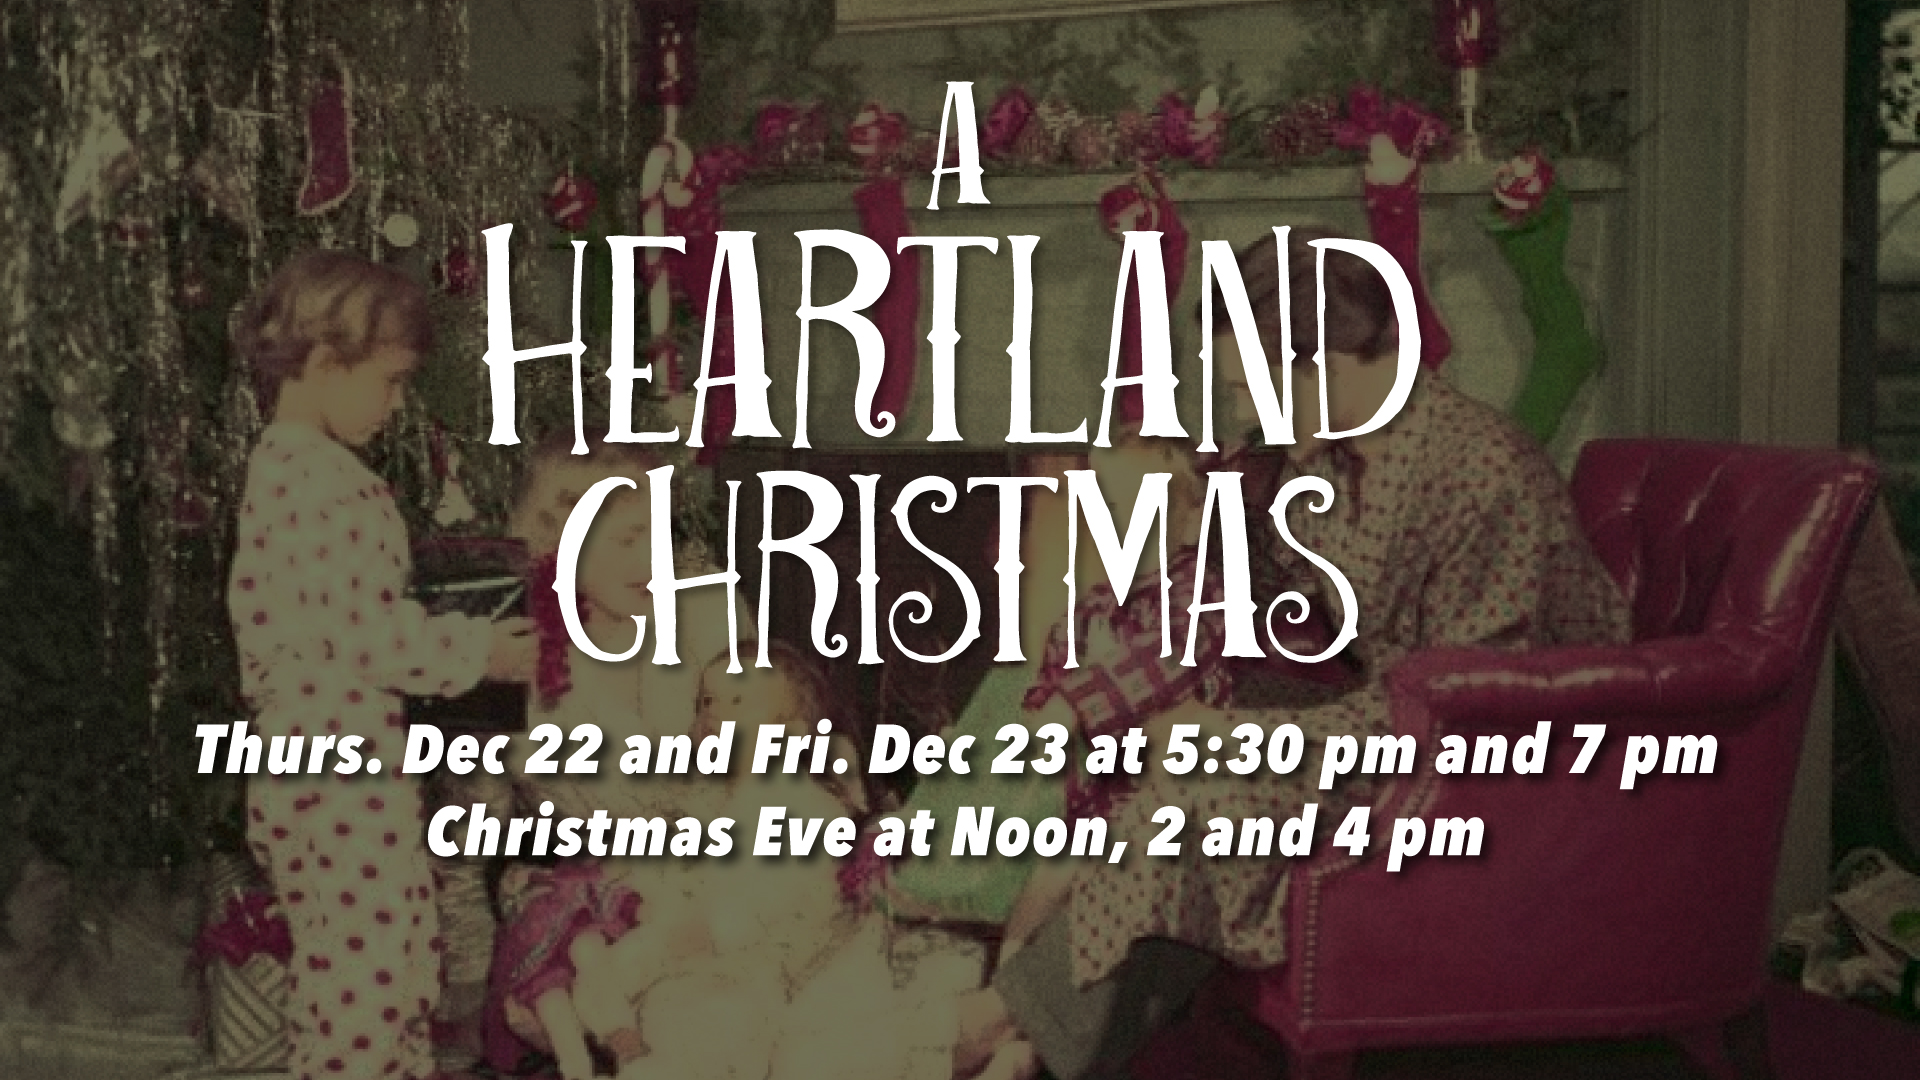 A Heartland Christmas.A Heartland Christmas 2016 Heartland Community Church